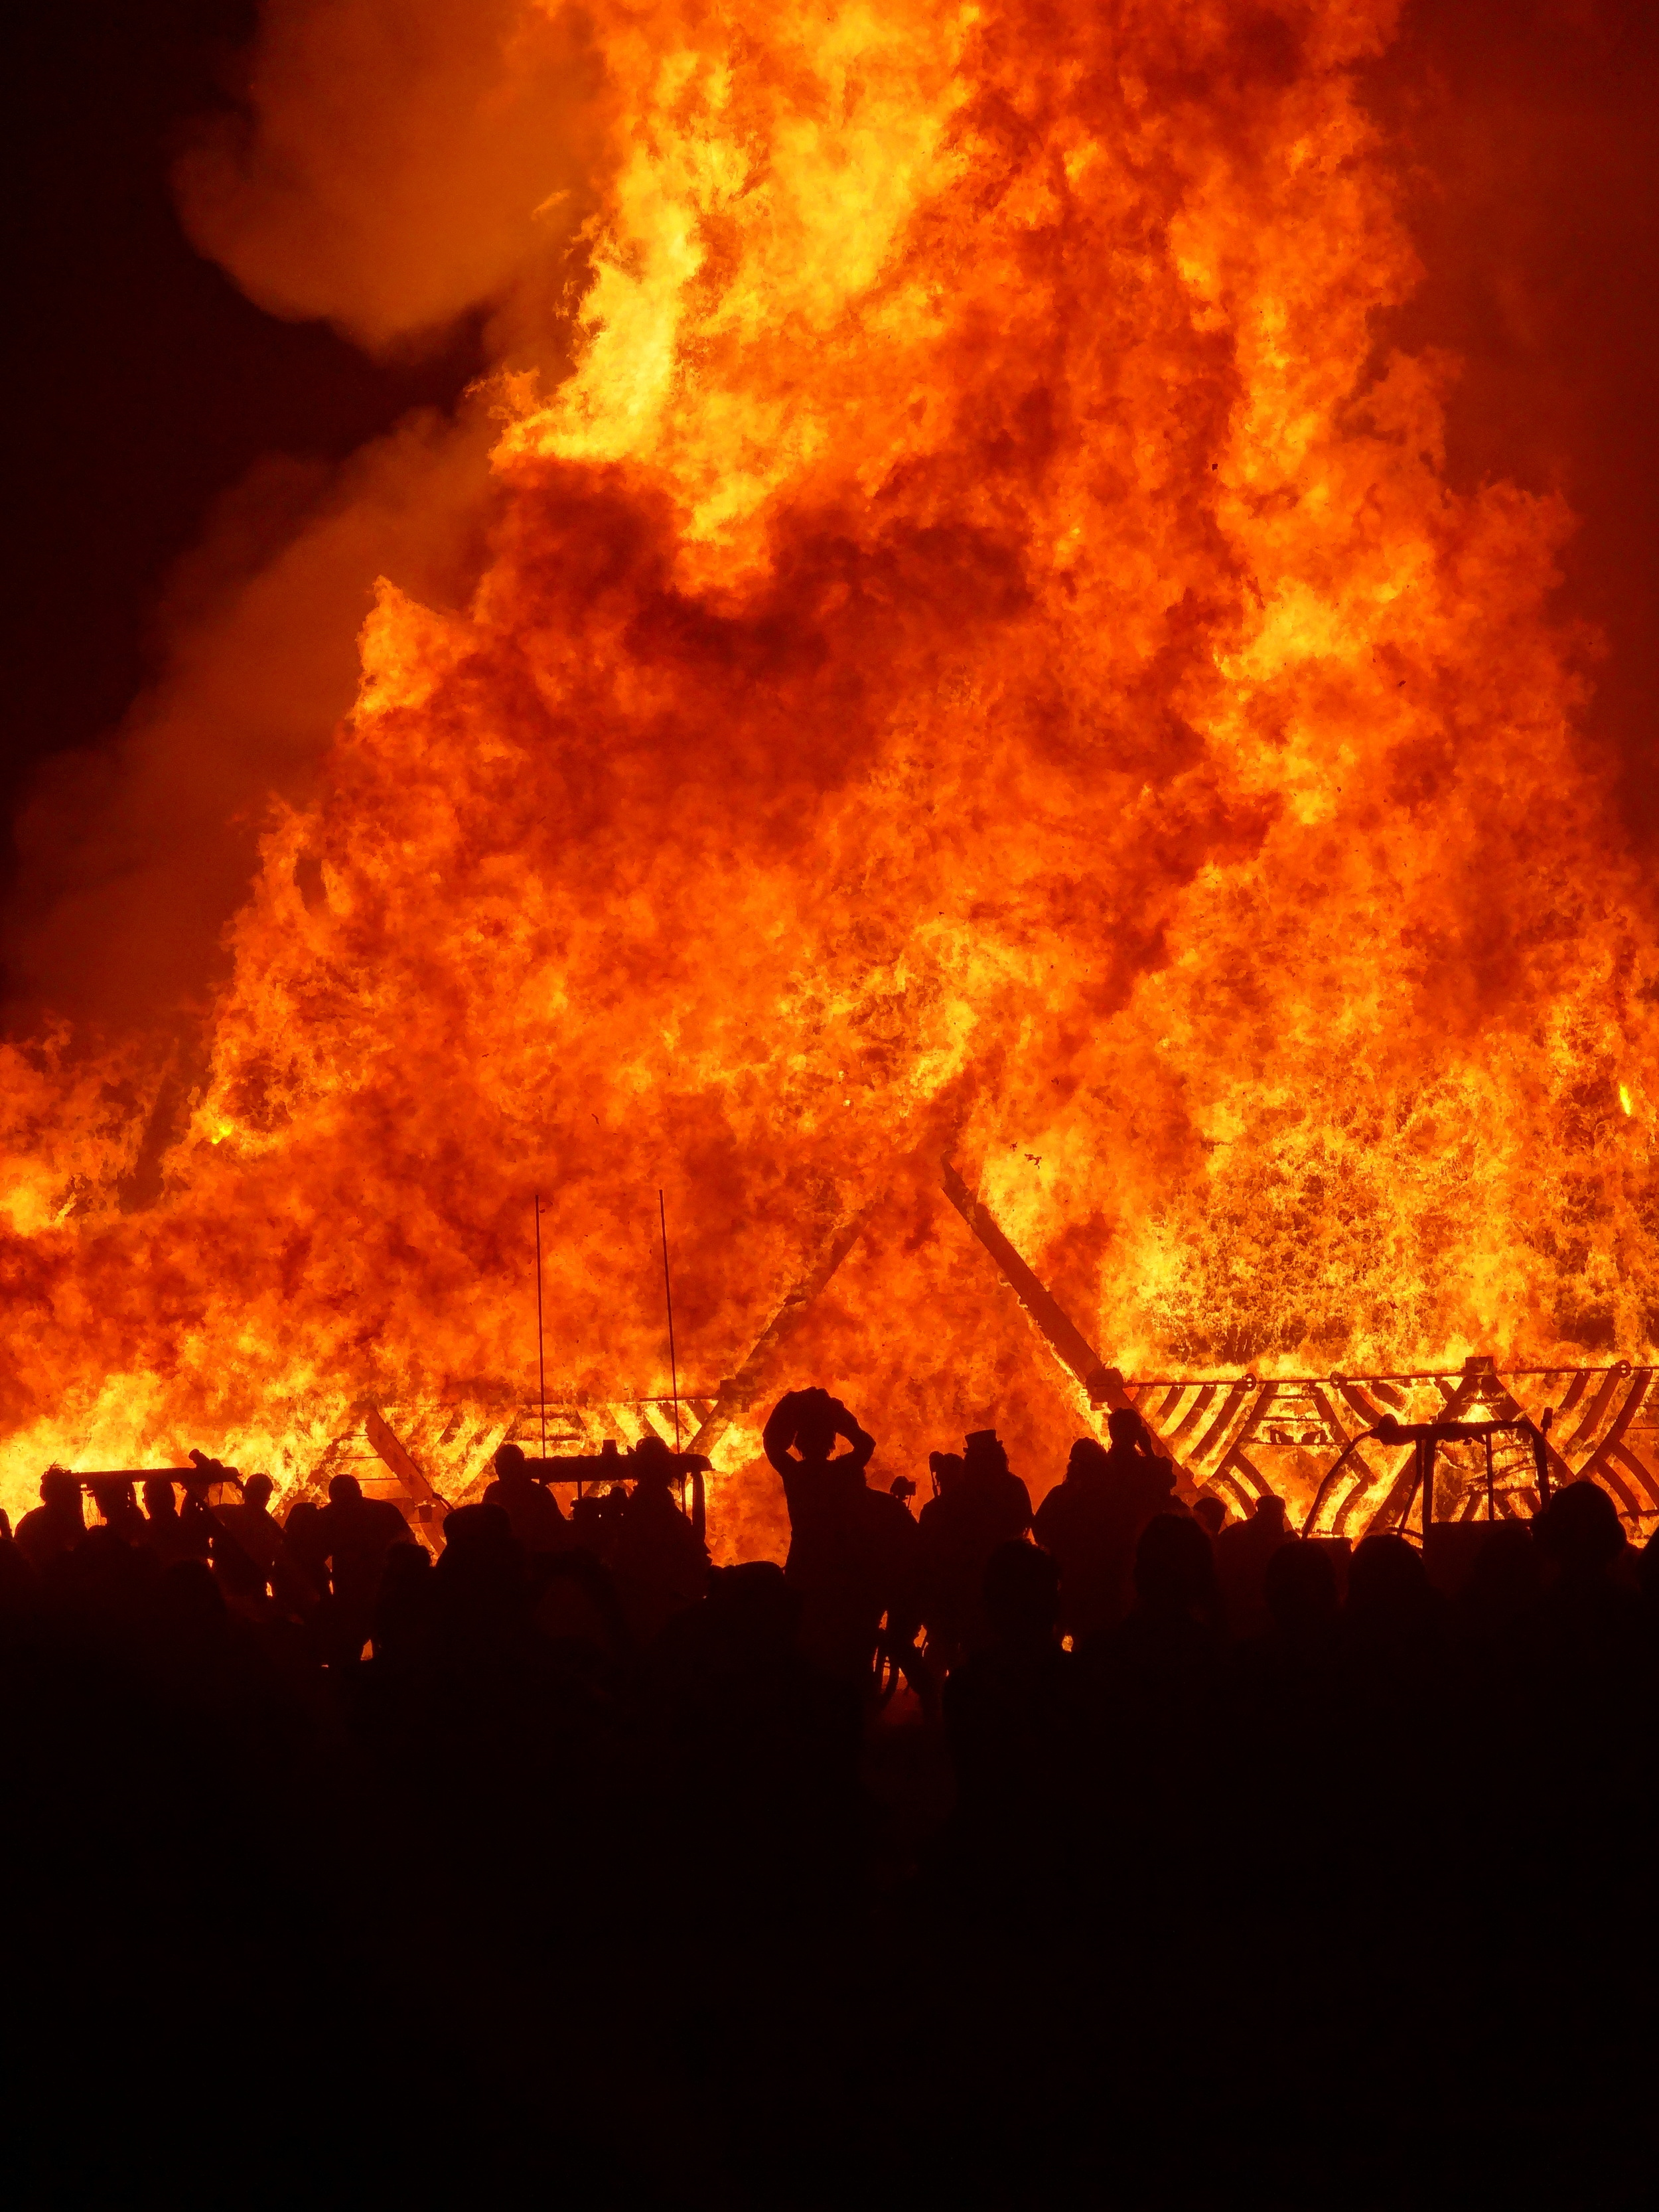 The Temple of Whollyness burns on Sunday night. The quiet ceremony features soft meditation bells, but was punctuated by one large gasp as the bulk of the pyramid shape came crashing down.